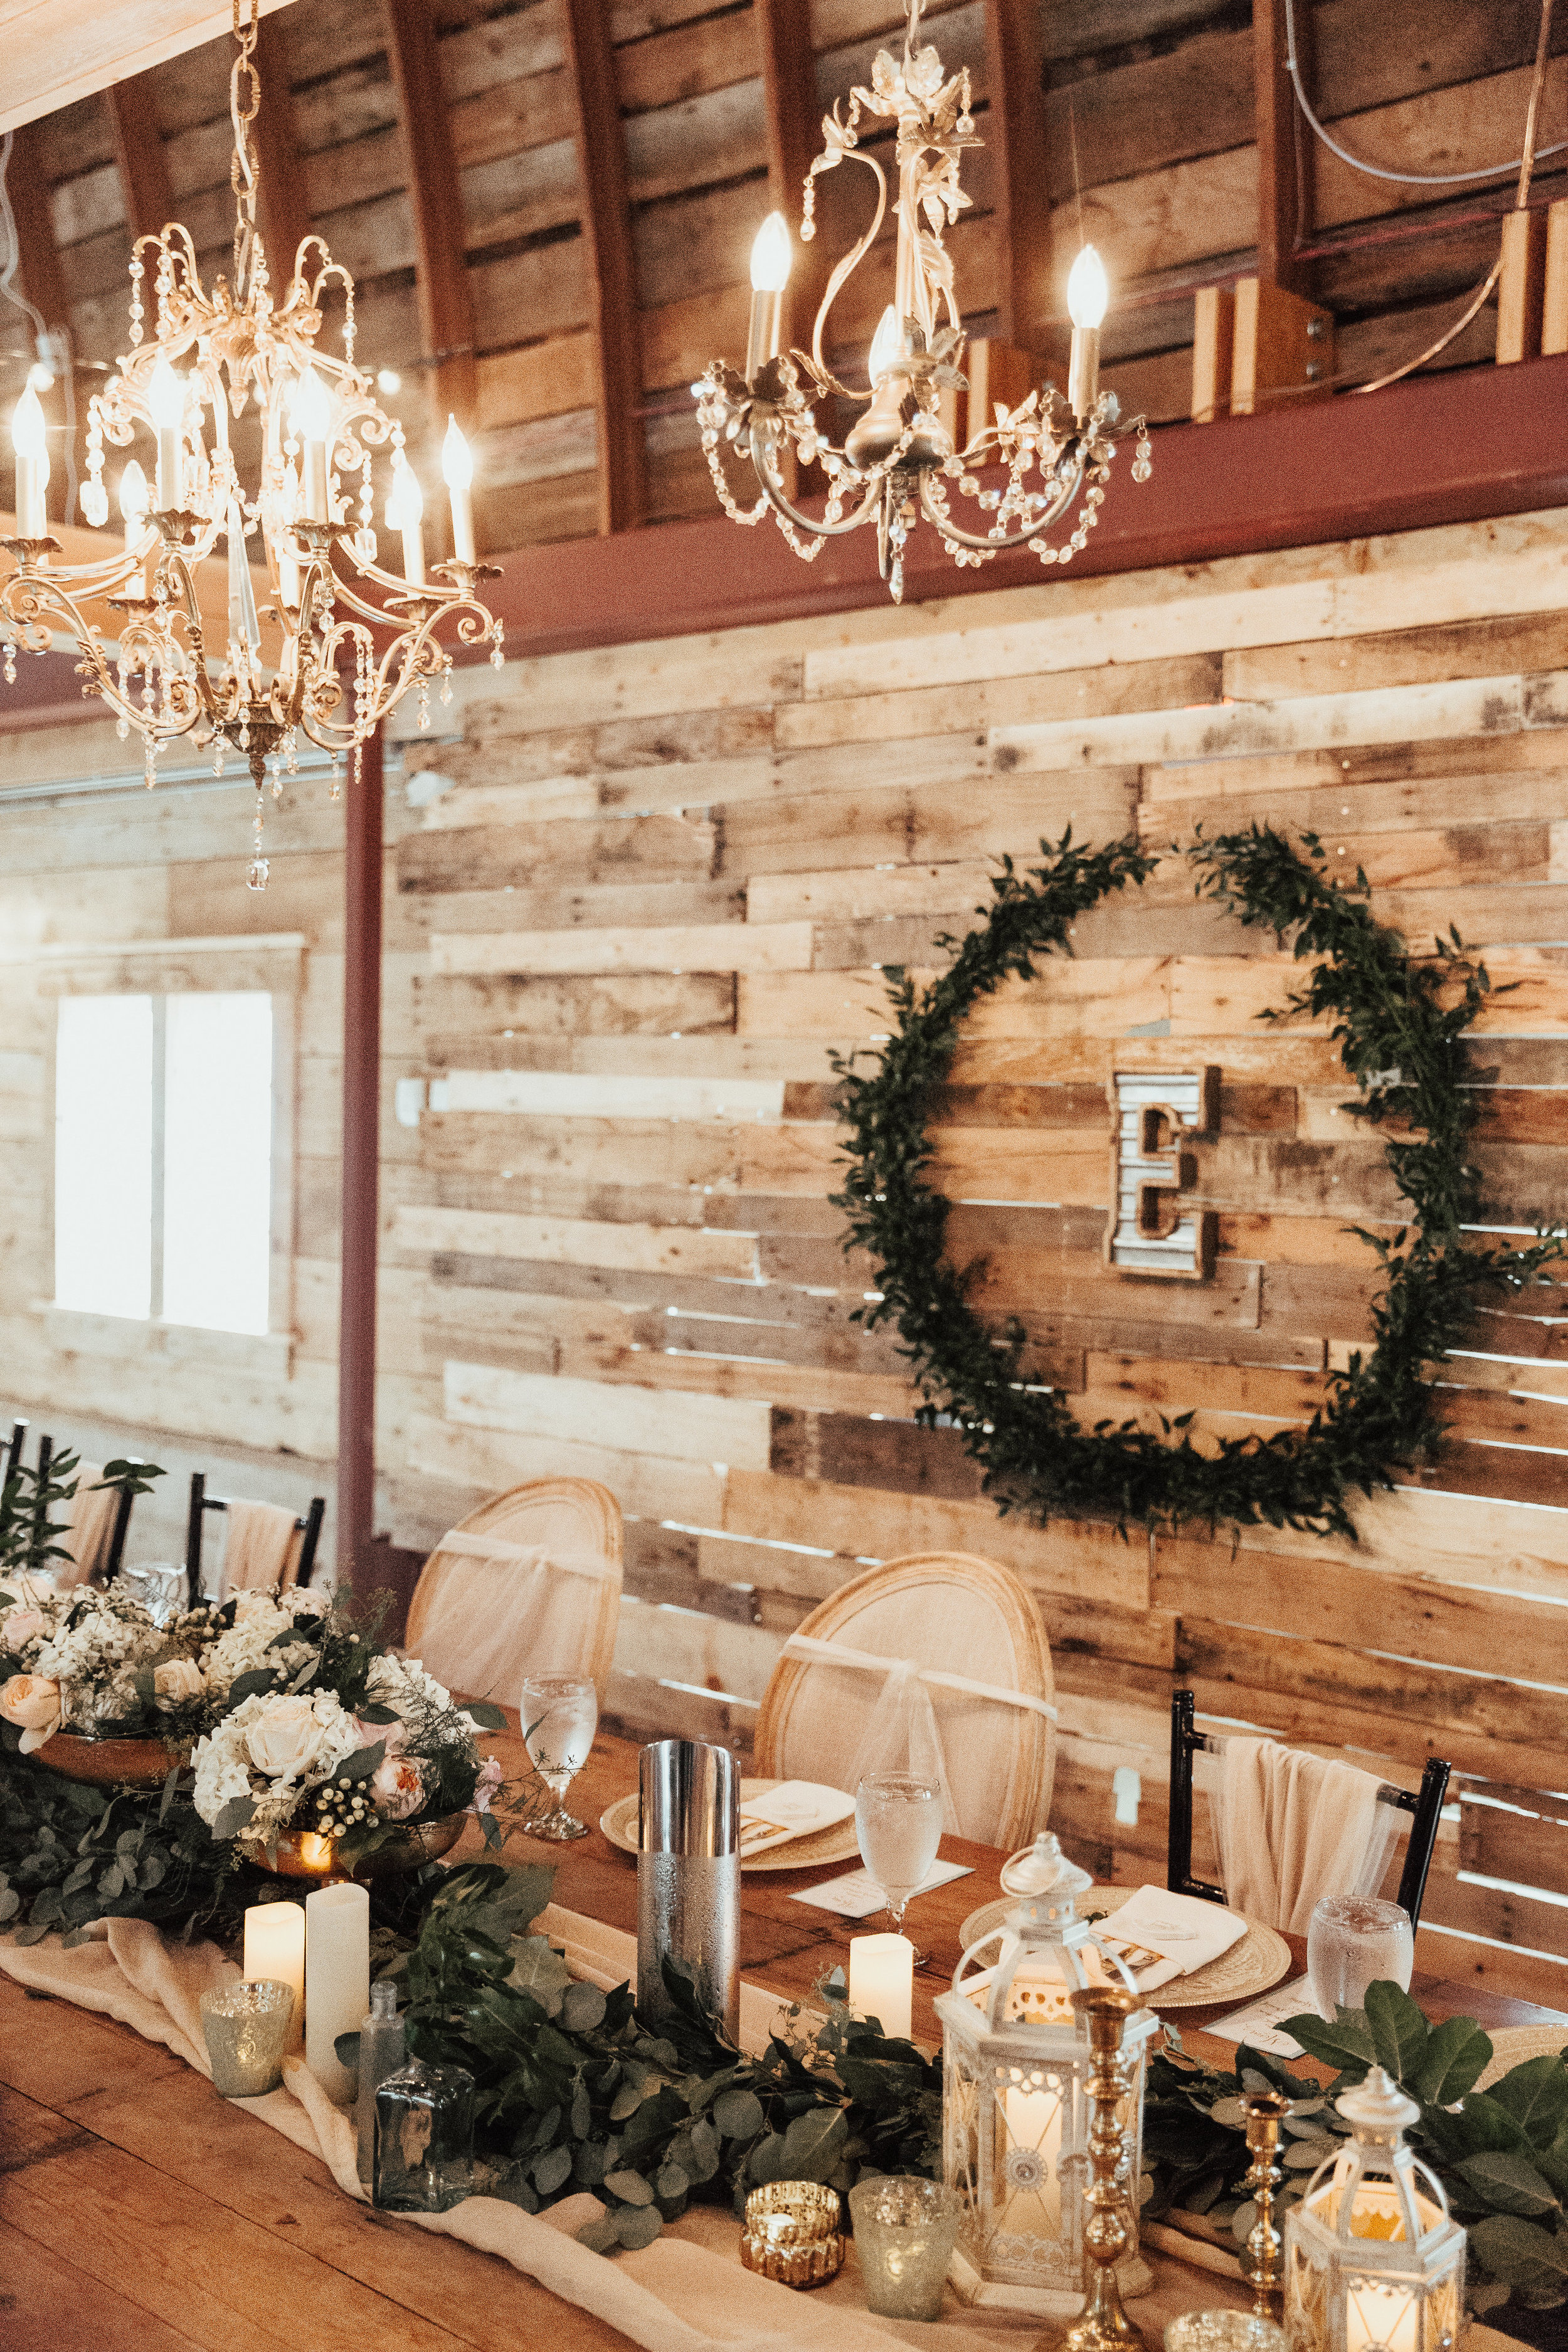 barn wood wall | green wreath with last name letter | barn chandeliers | custom runner decor with lanterns and votives and compotes | Janelle Elise Photography | Sixpence Events day of coordinating | wedding blog | wedding planned and rentals by A Vintage Touch Weddings